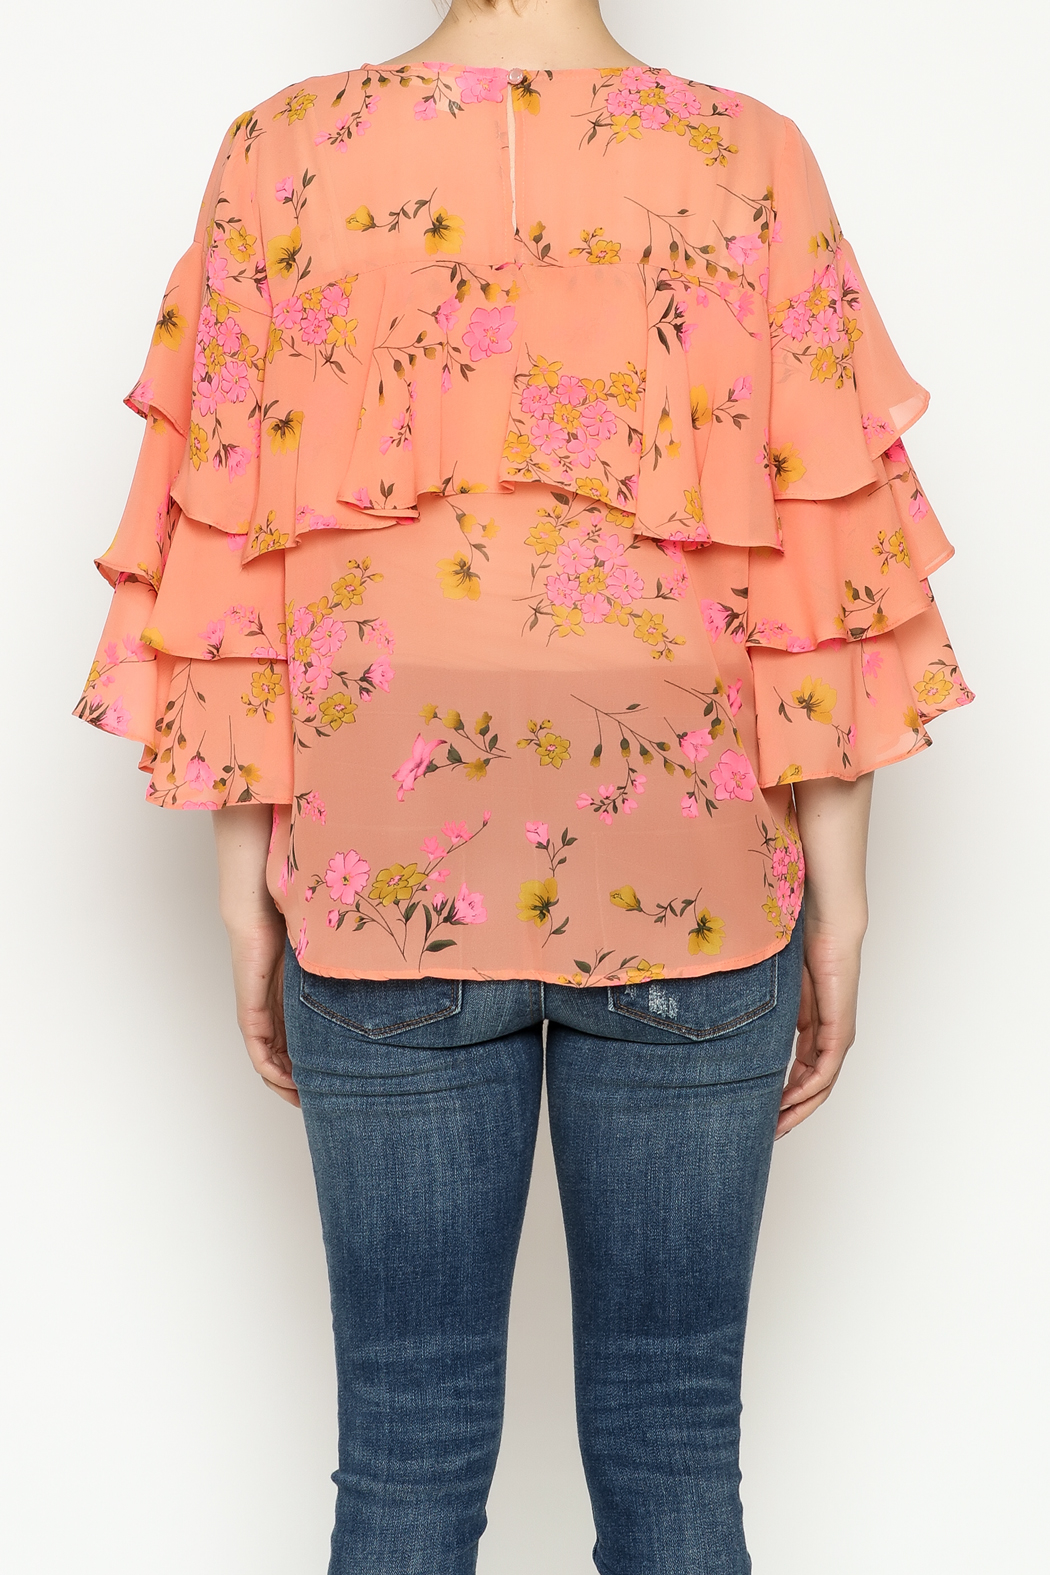 Cousin Earl Peach Floral Top - Back Cropped Image